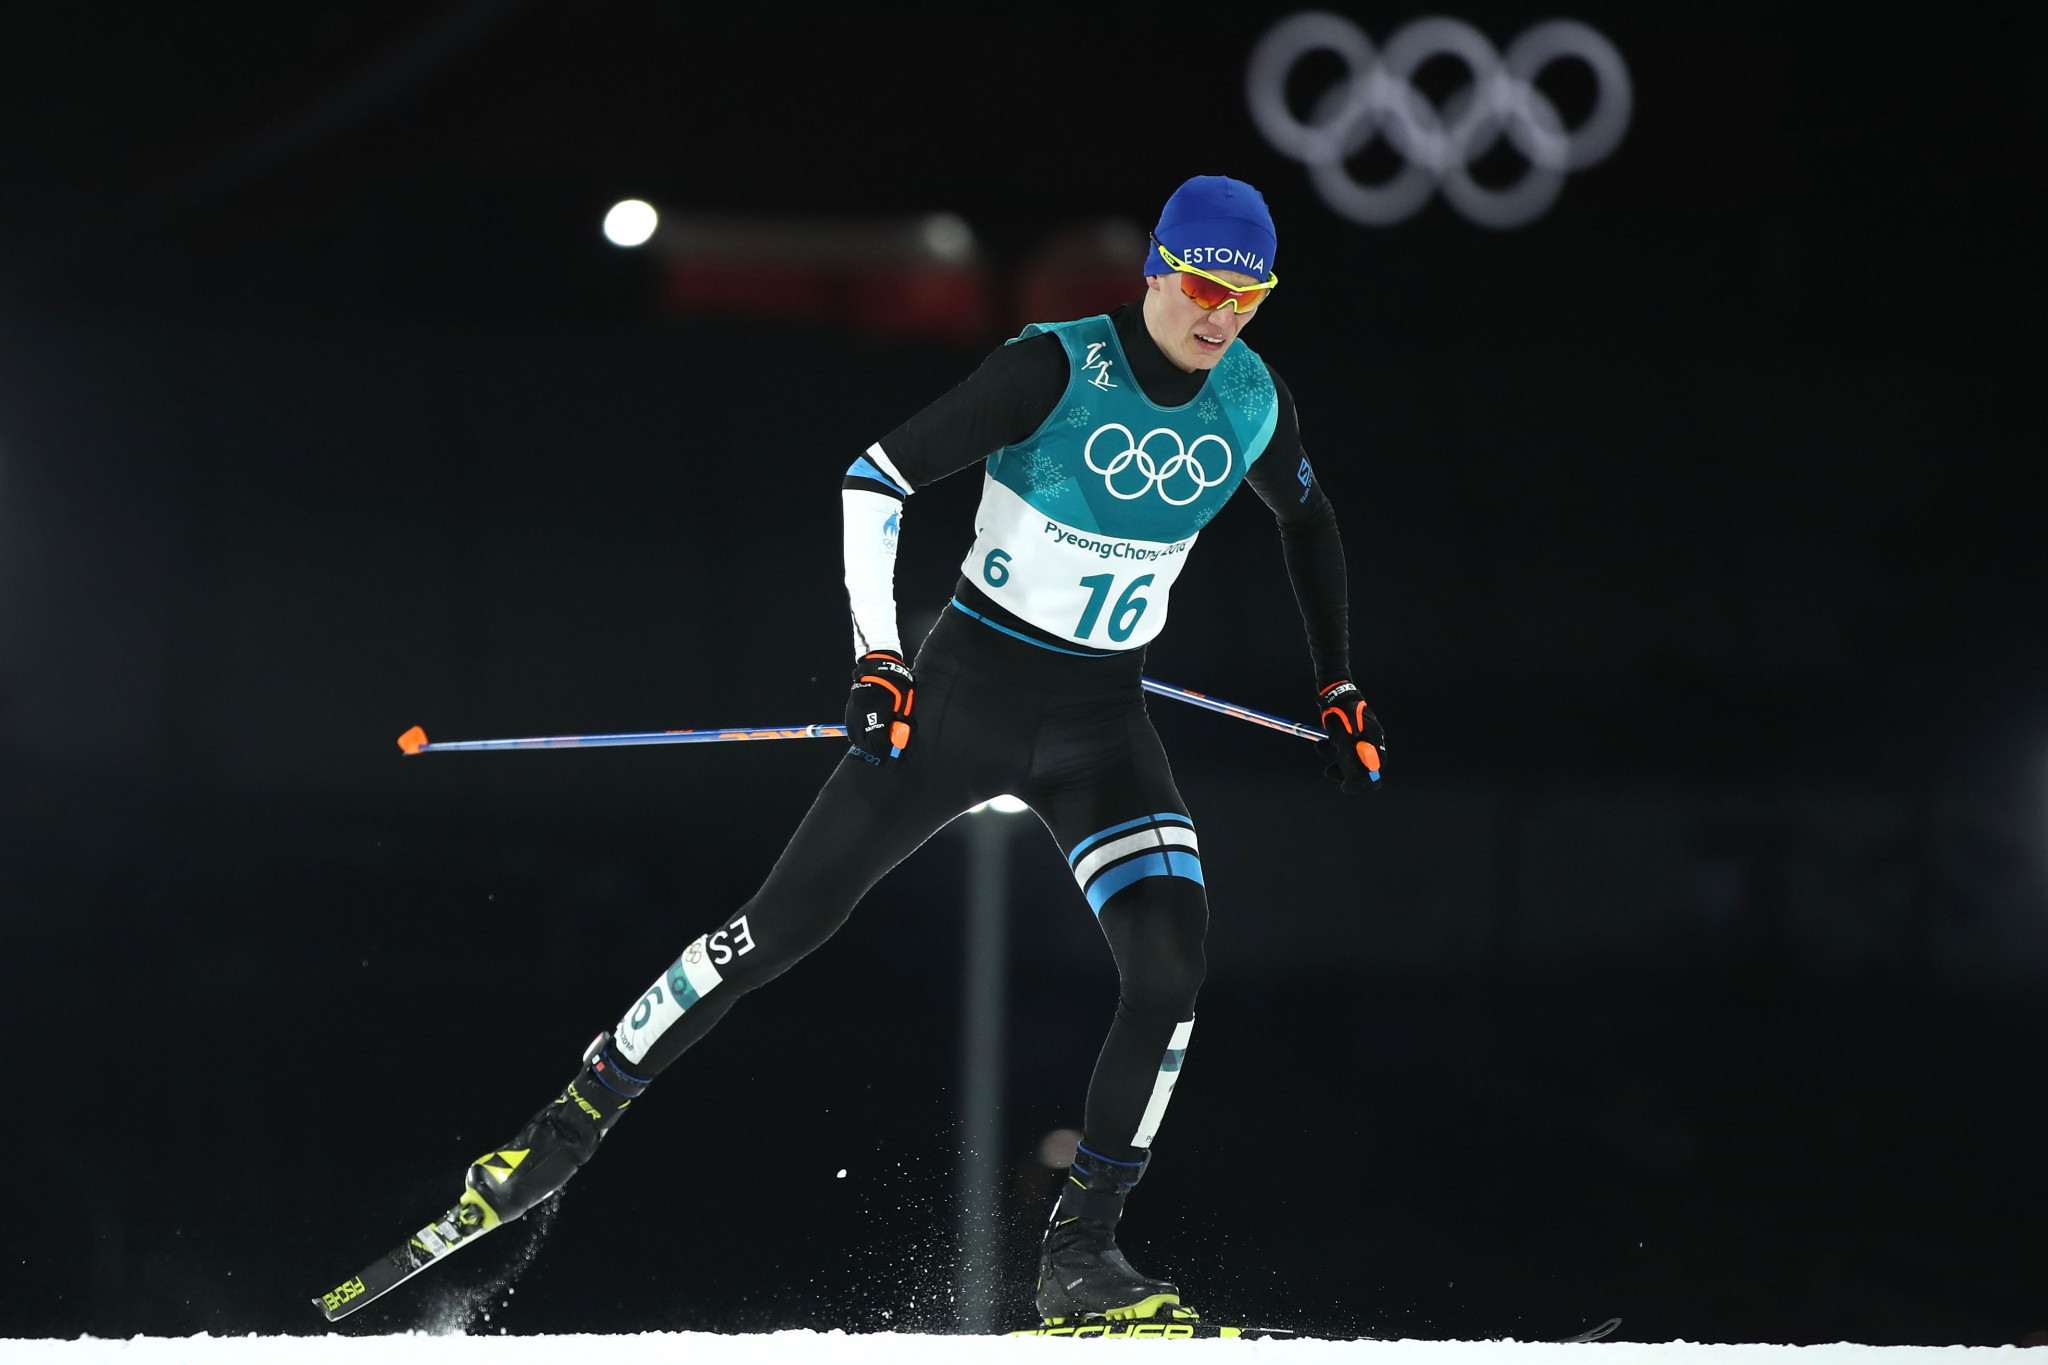 Estonian Ilves to train with Norwegian team before new Nordic combined season